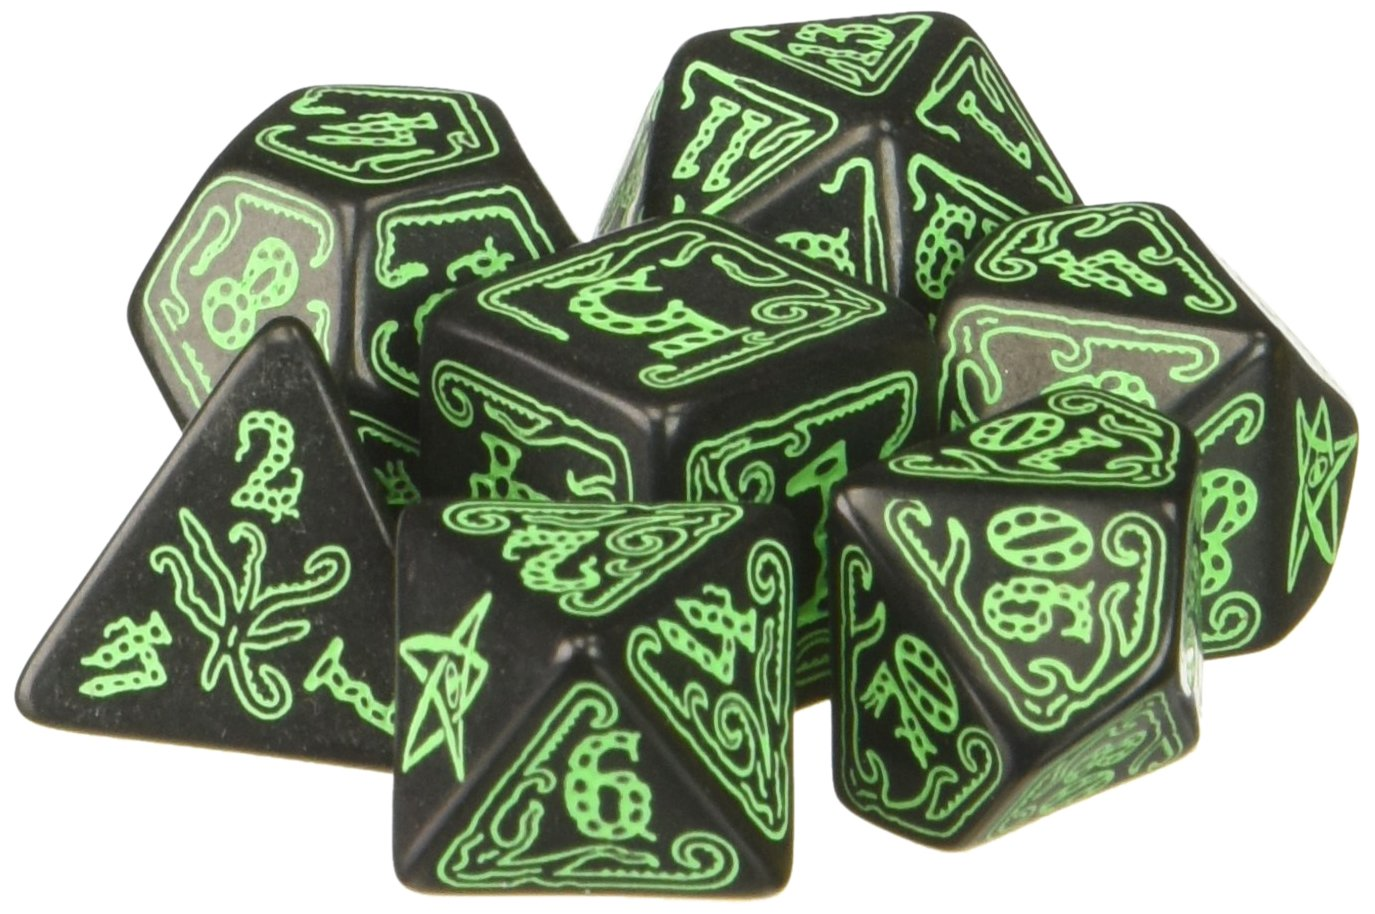 a place to call home box set call of cthulhu 7th edition black green dice set call of Amazon.com: Q Workshop Call of Cthulhu: Black and Green Dice, Set of 7:  Toys u0026 Games